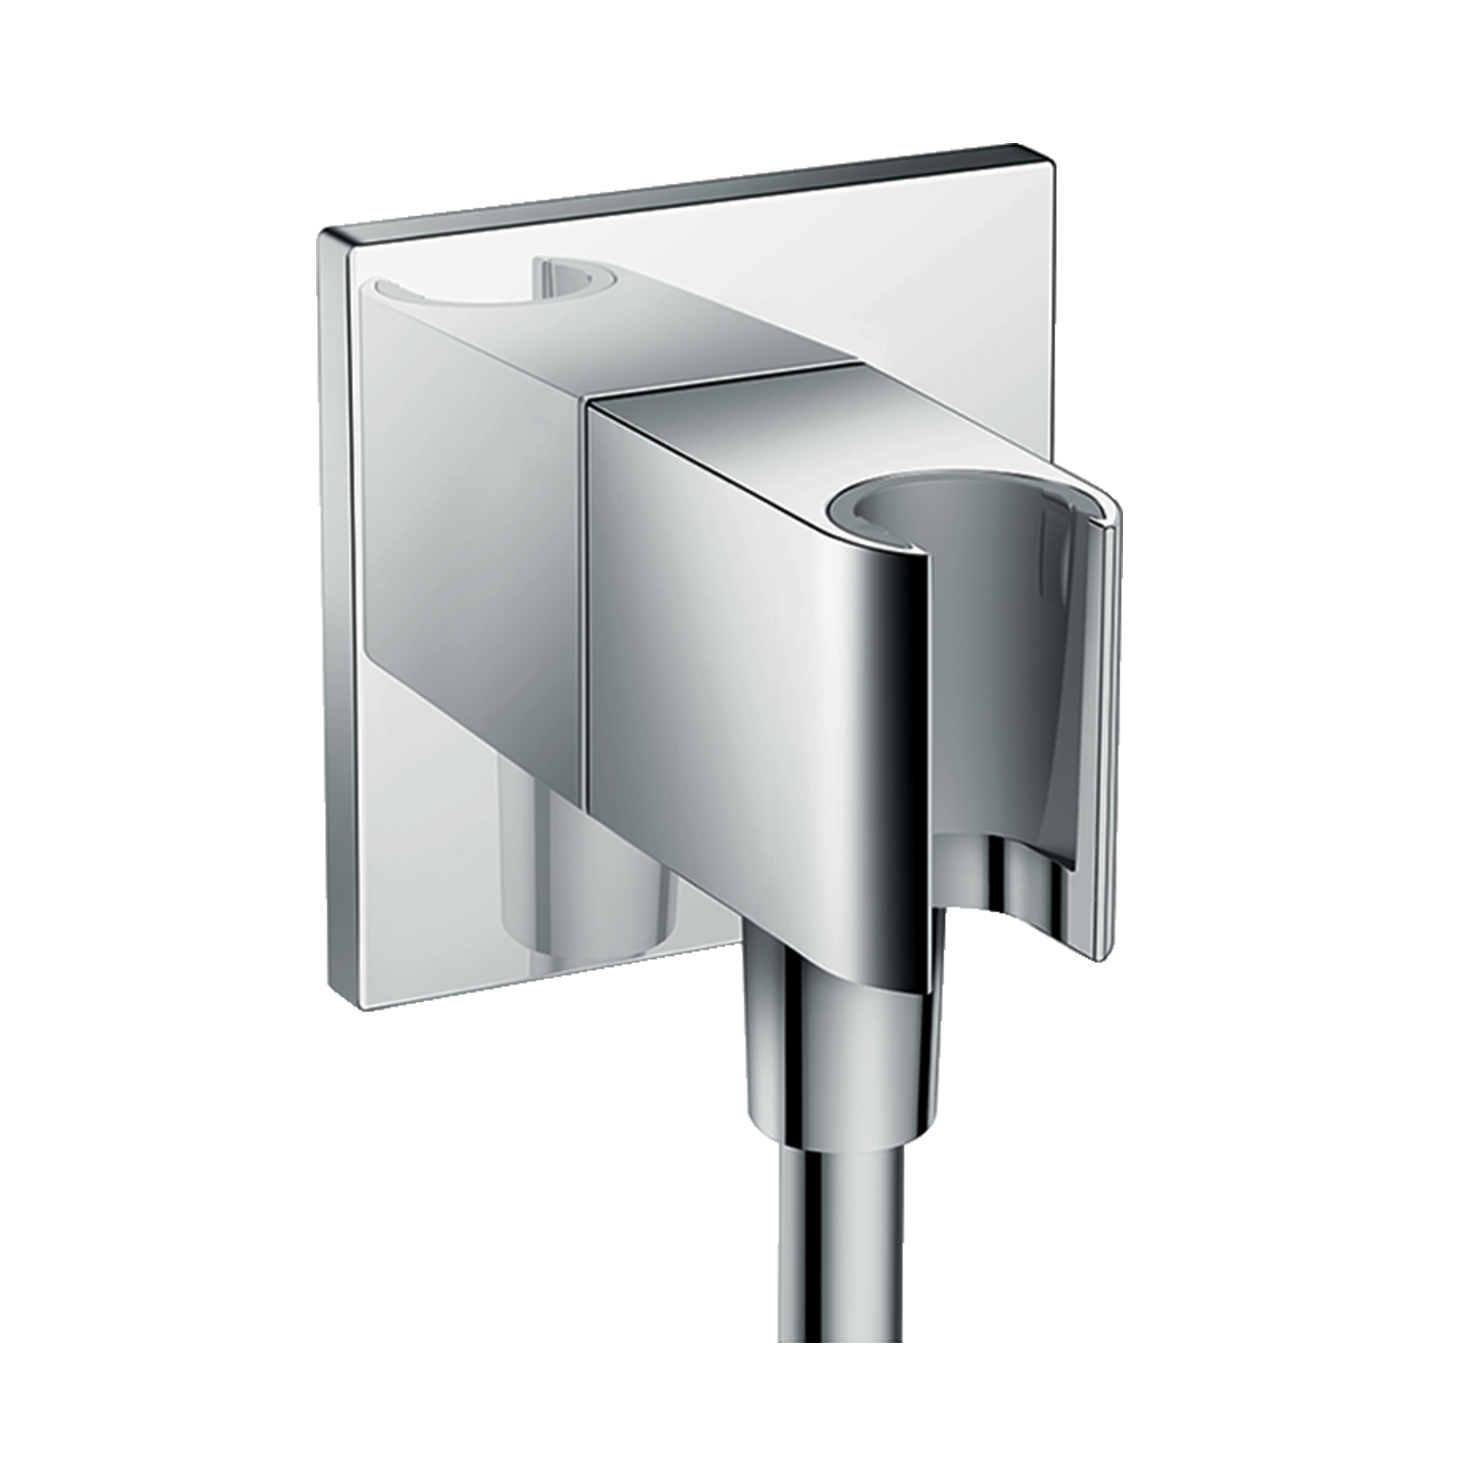 FixFit Wall-outlet Square with Shower Holder